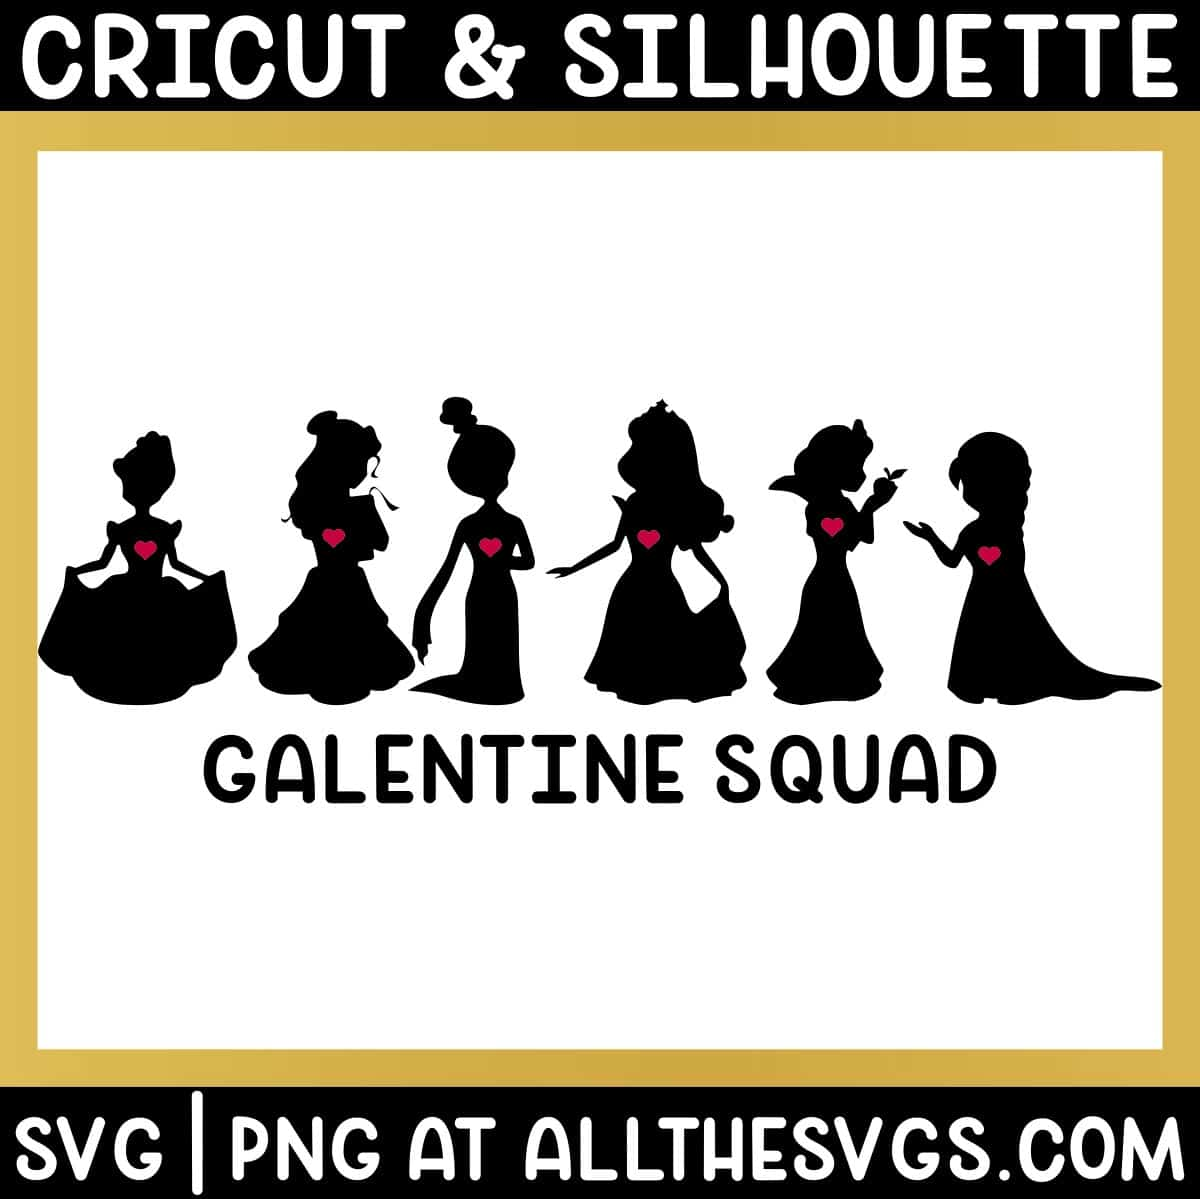 free disney princess galentine squad svg file chibi anime style silhouettes with hearts